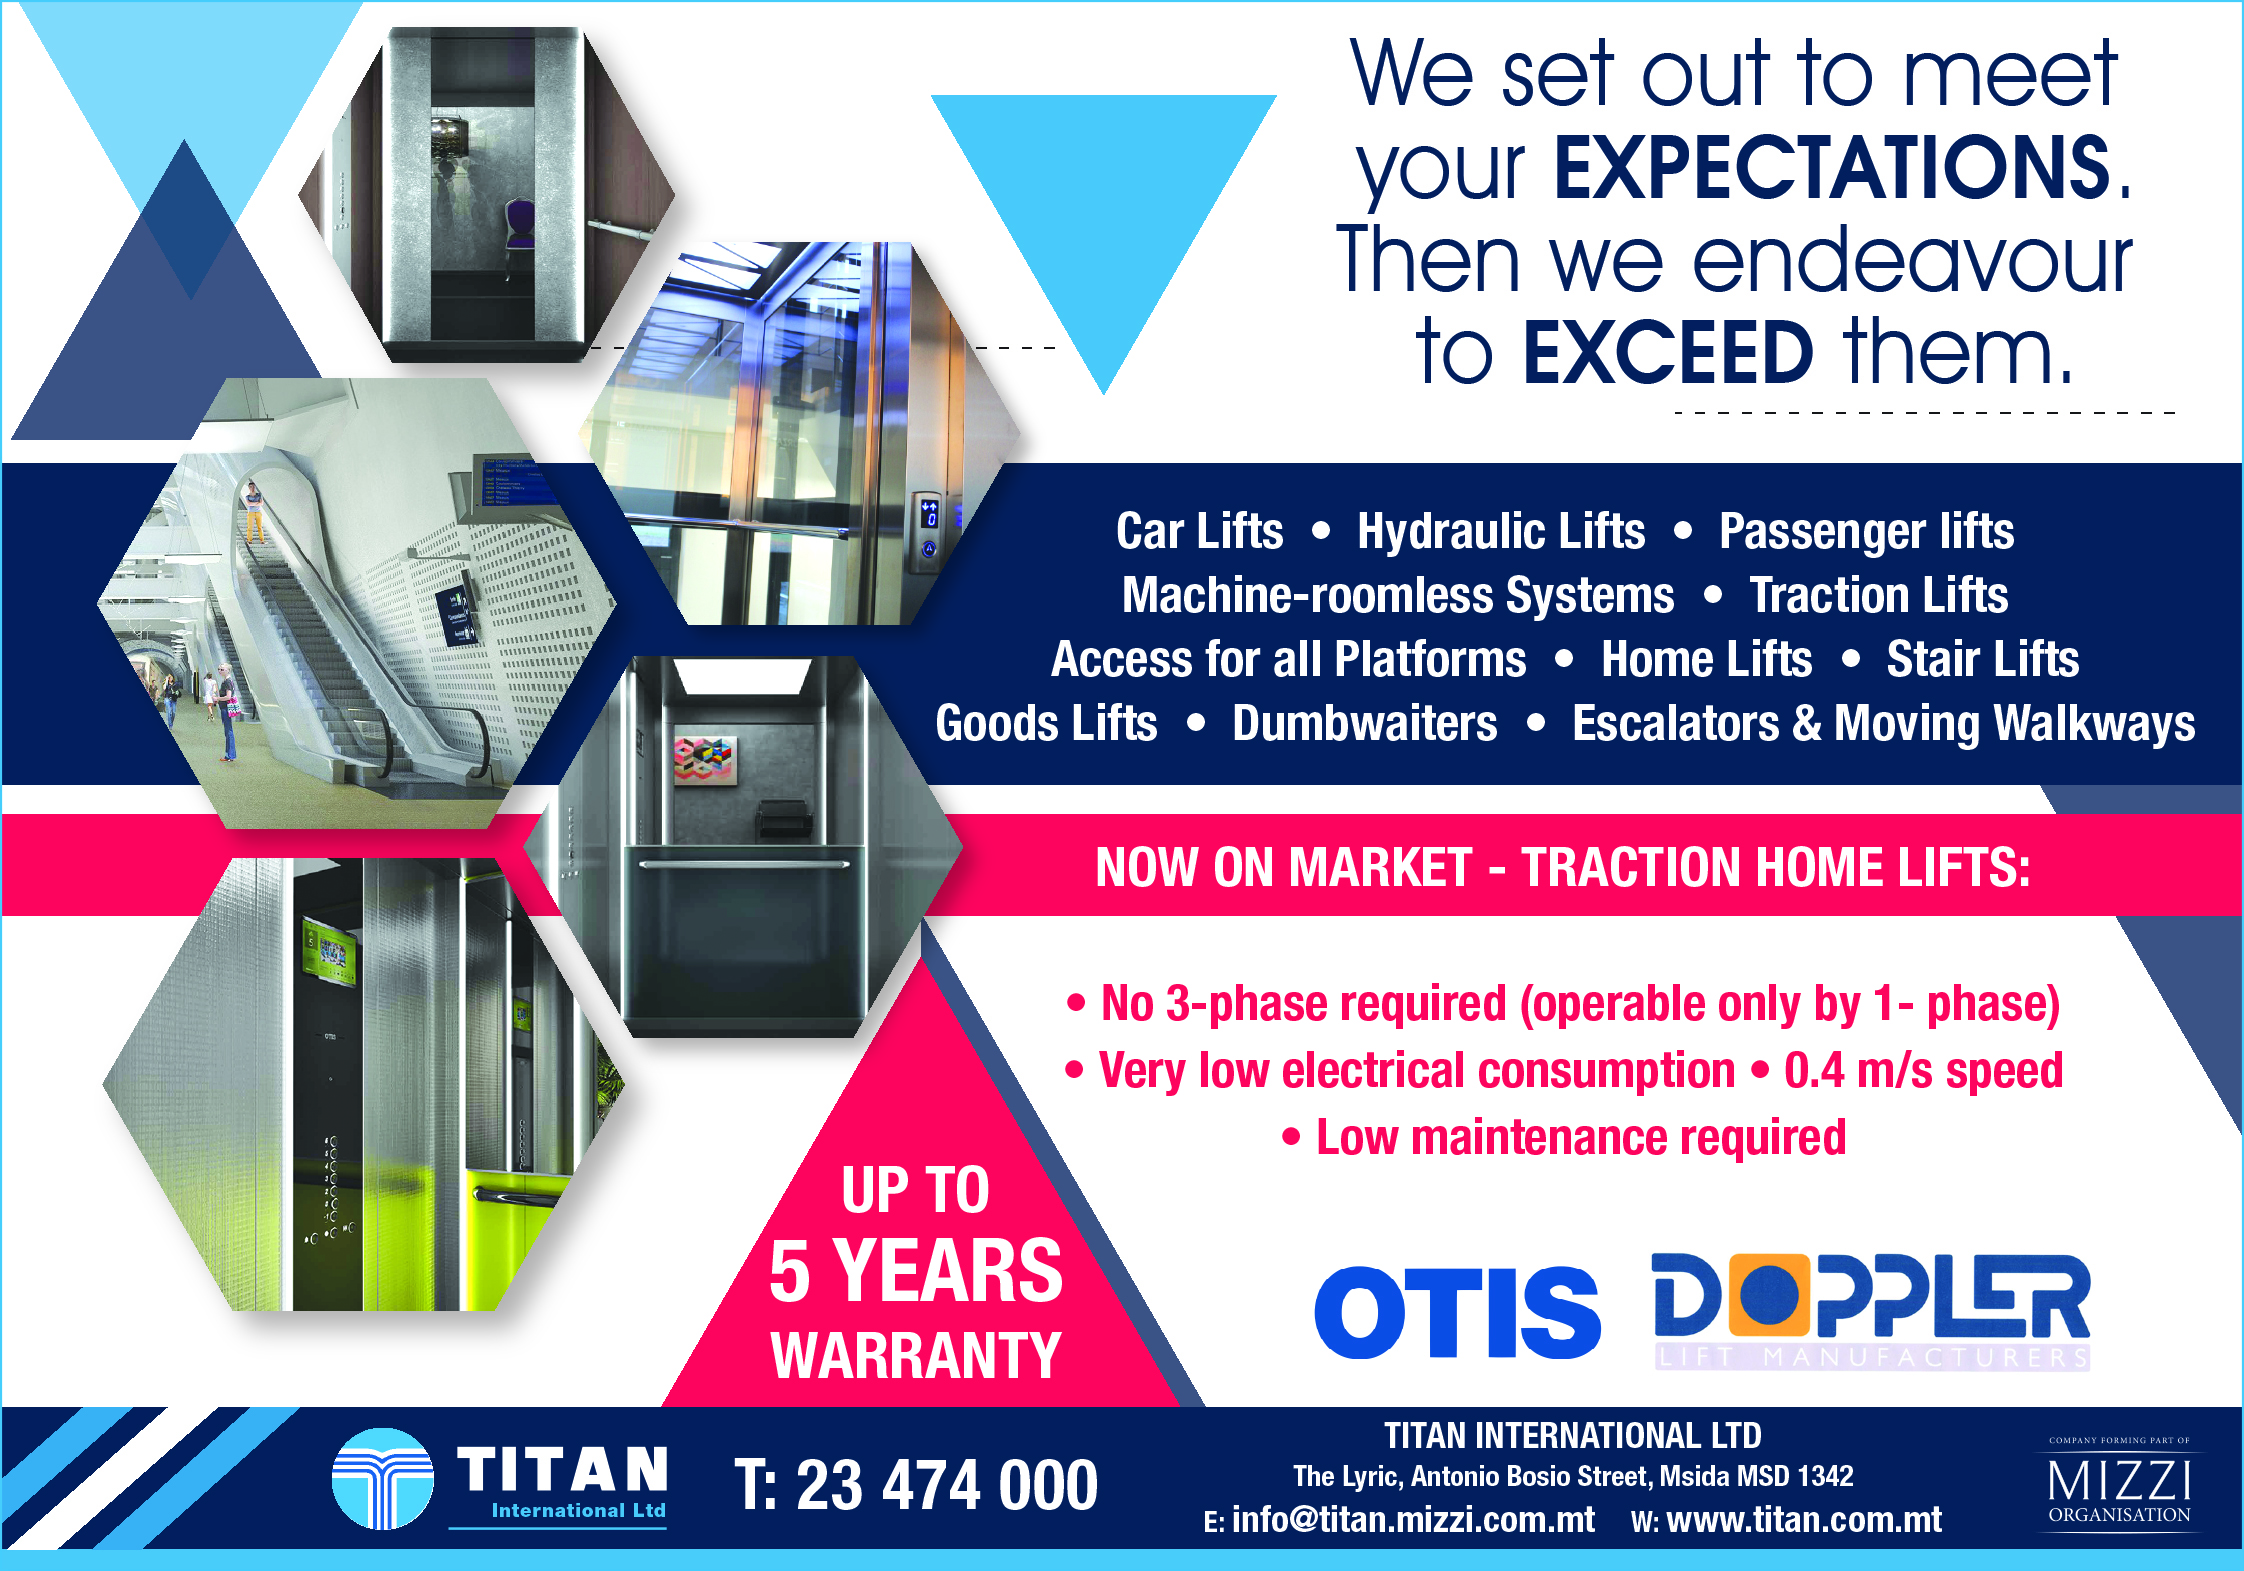 Titan International Ltd - Lifts & Escalators